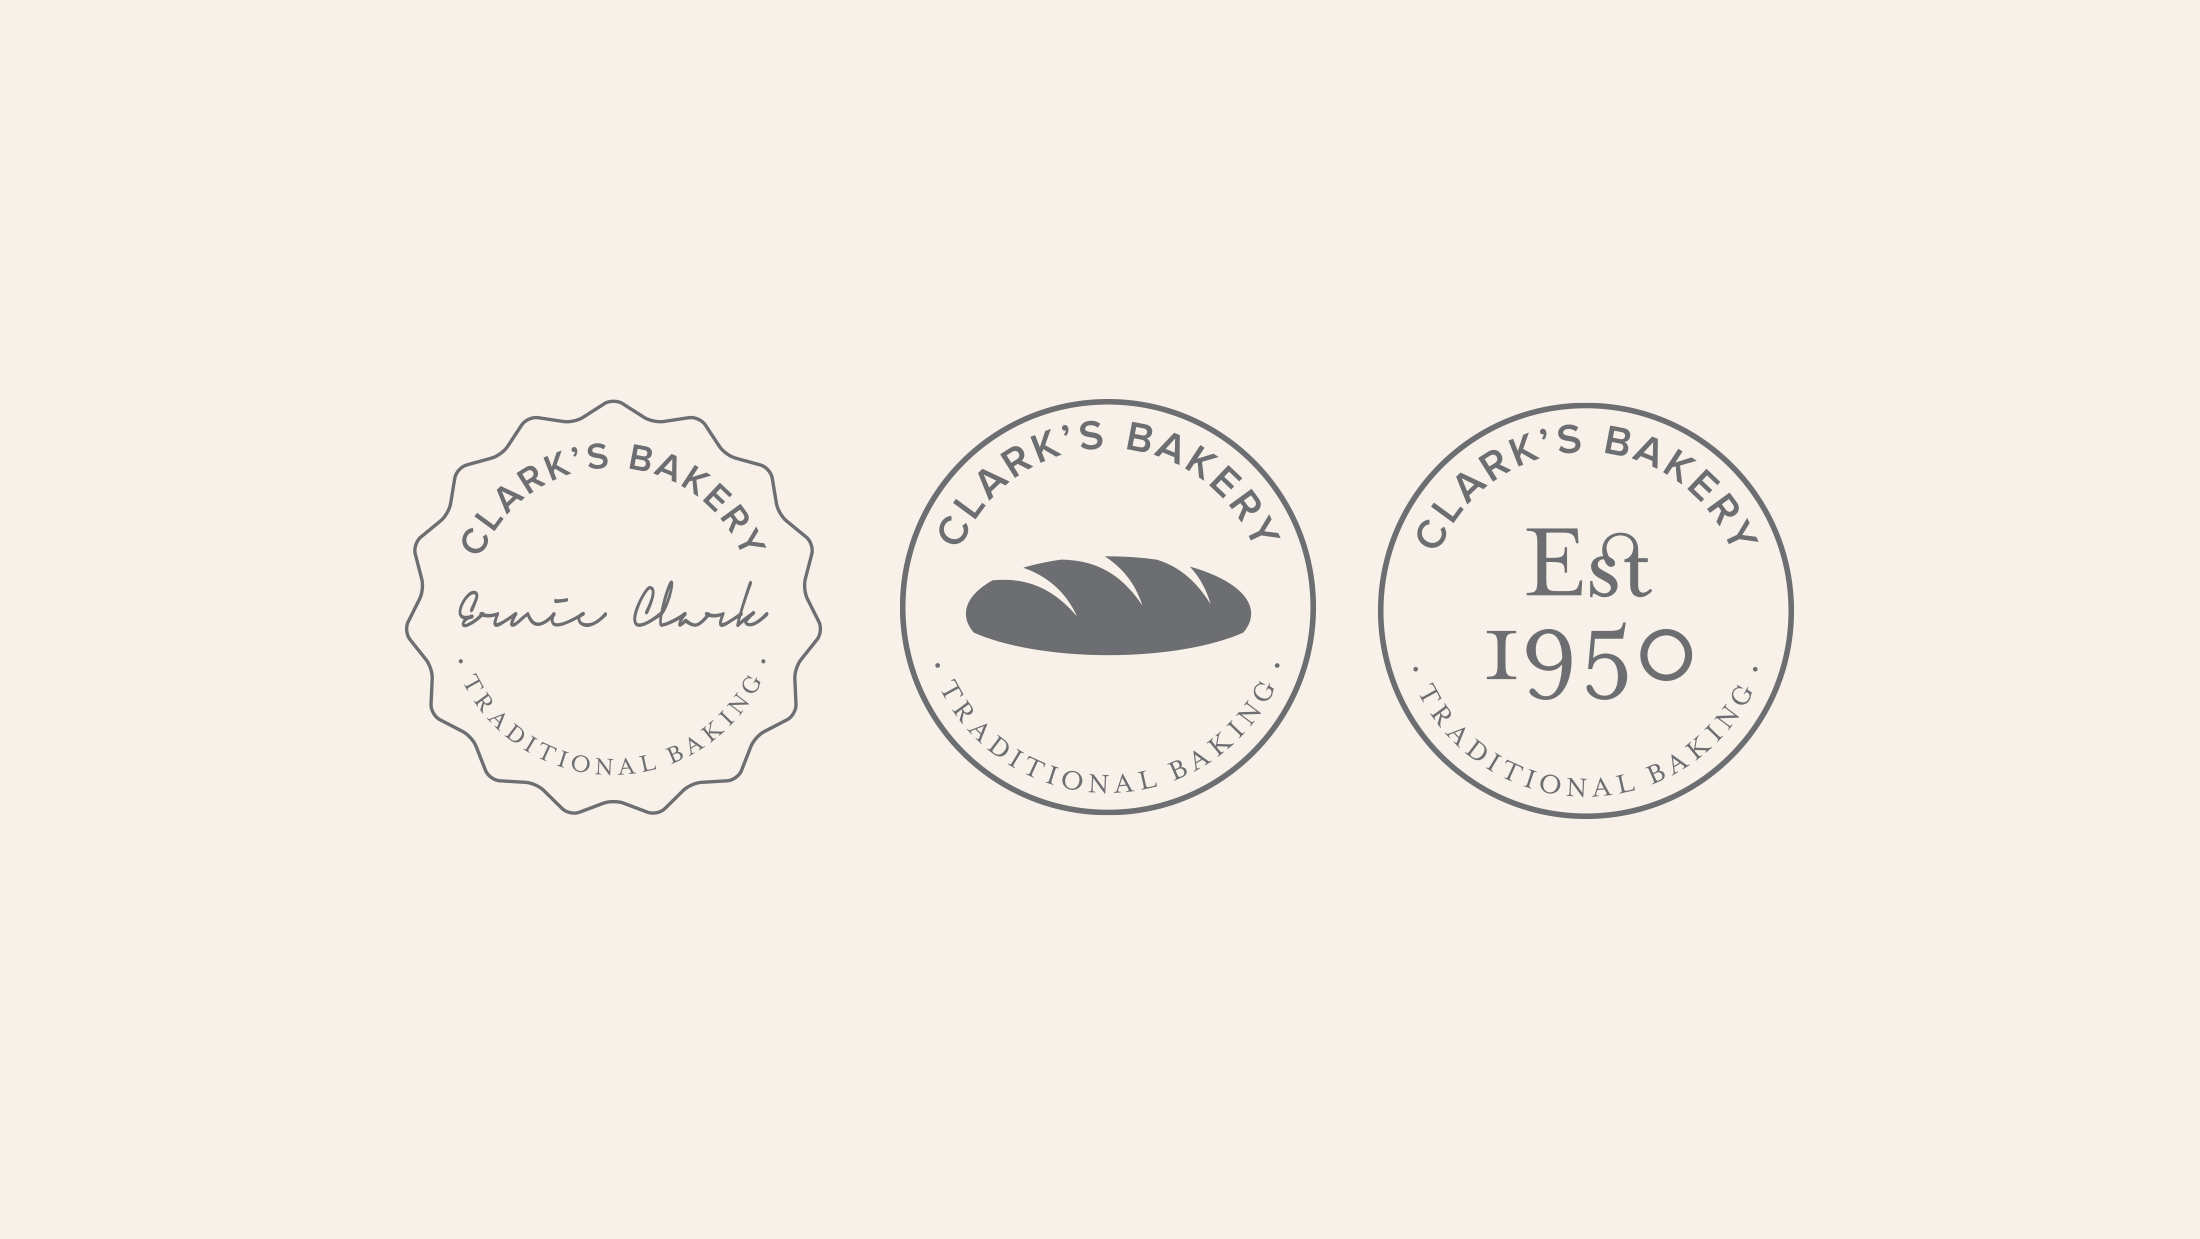 Three different circular logo marks for Clark's Bakery showing a signature, loaf of bread and established date